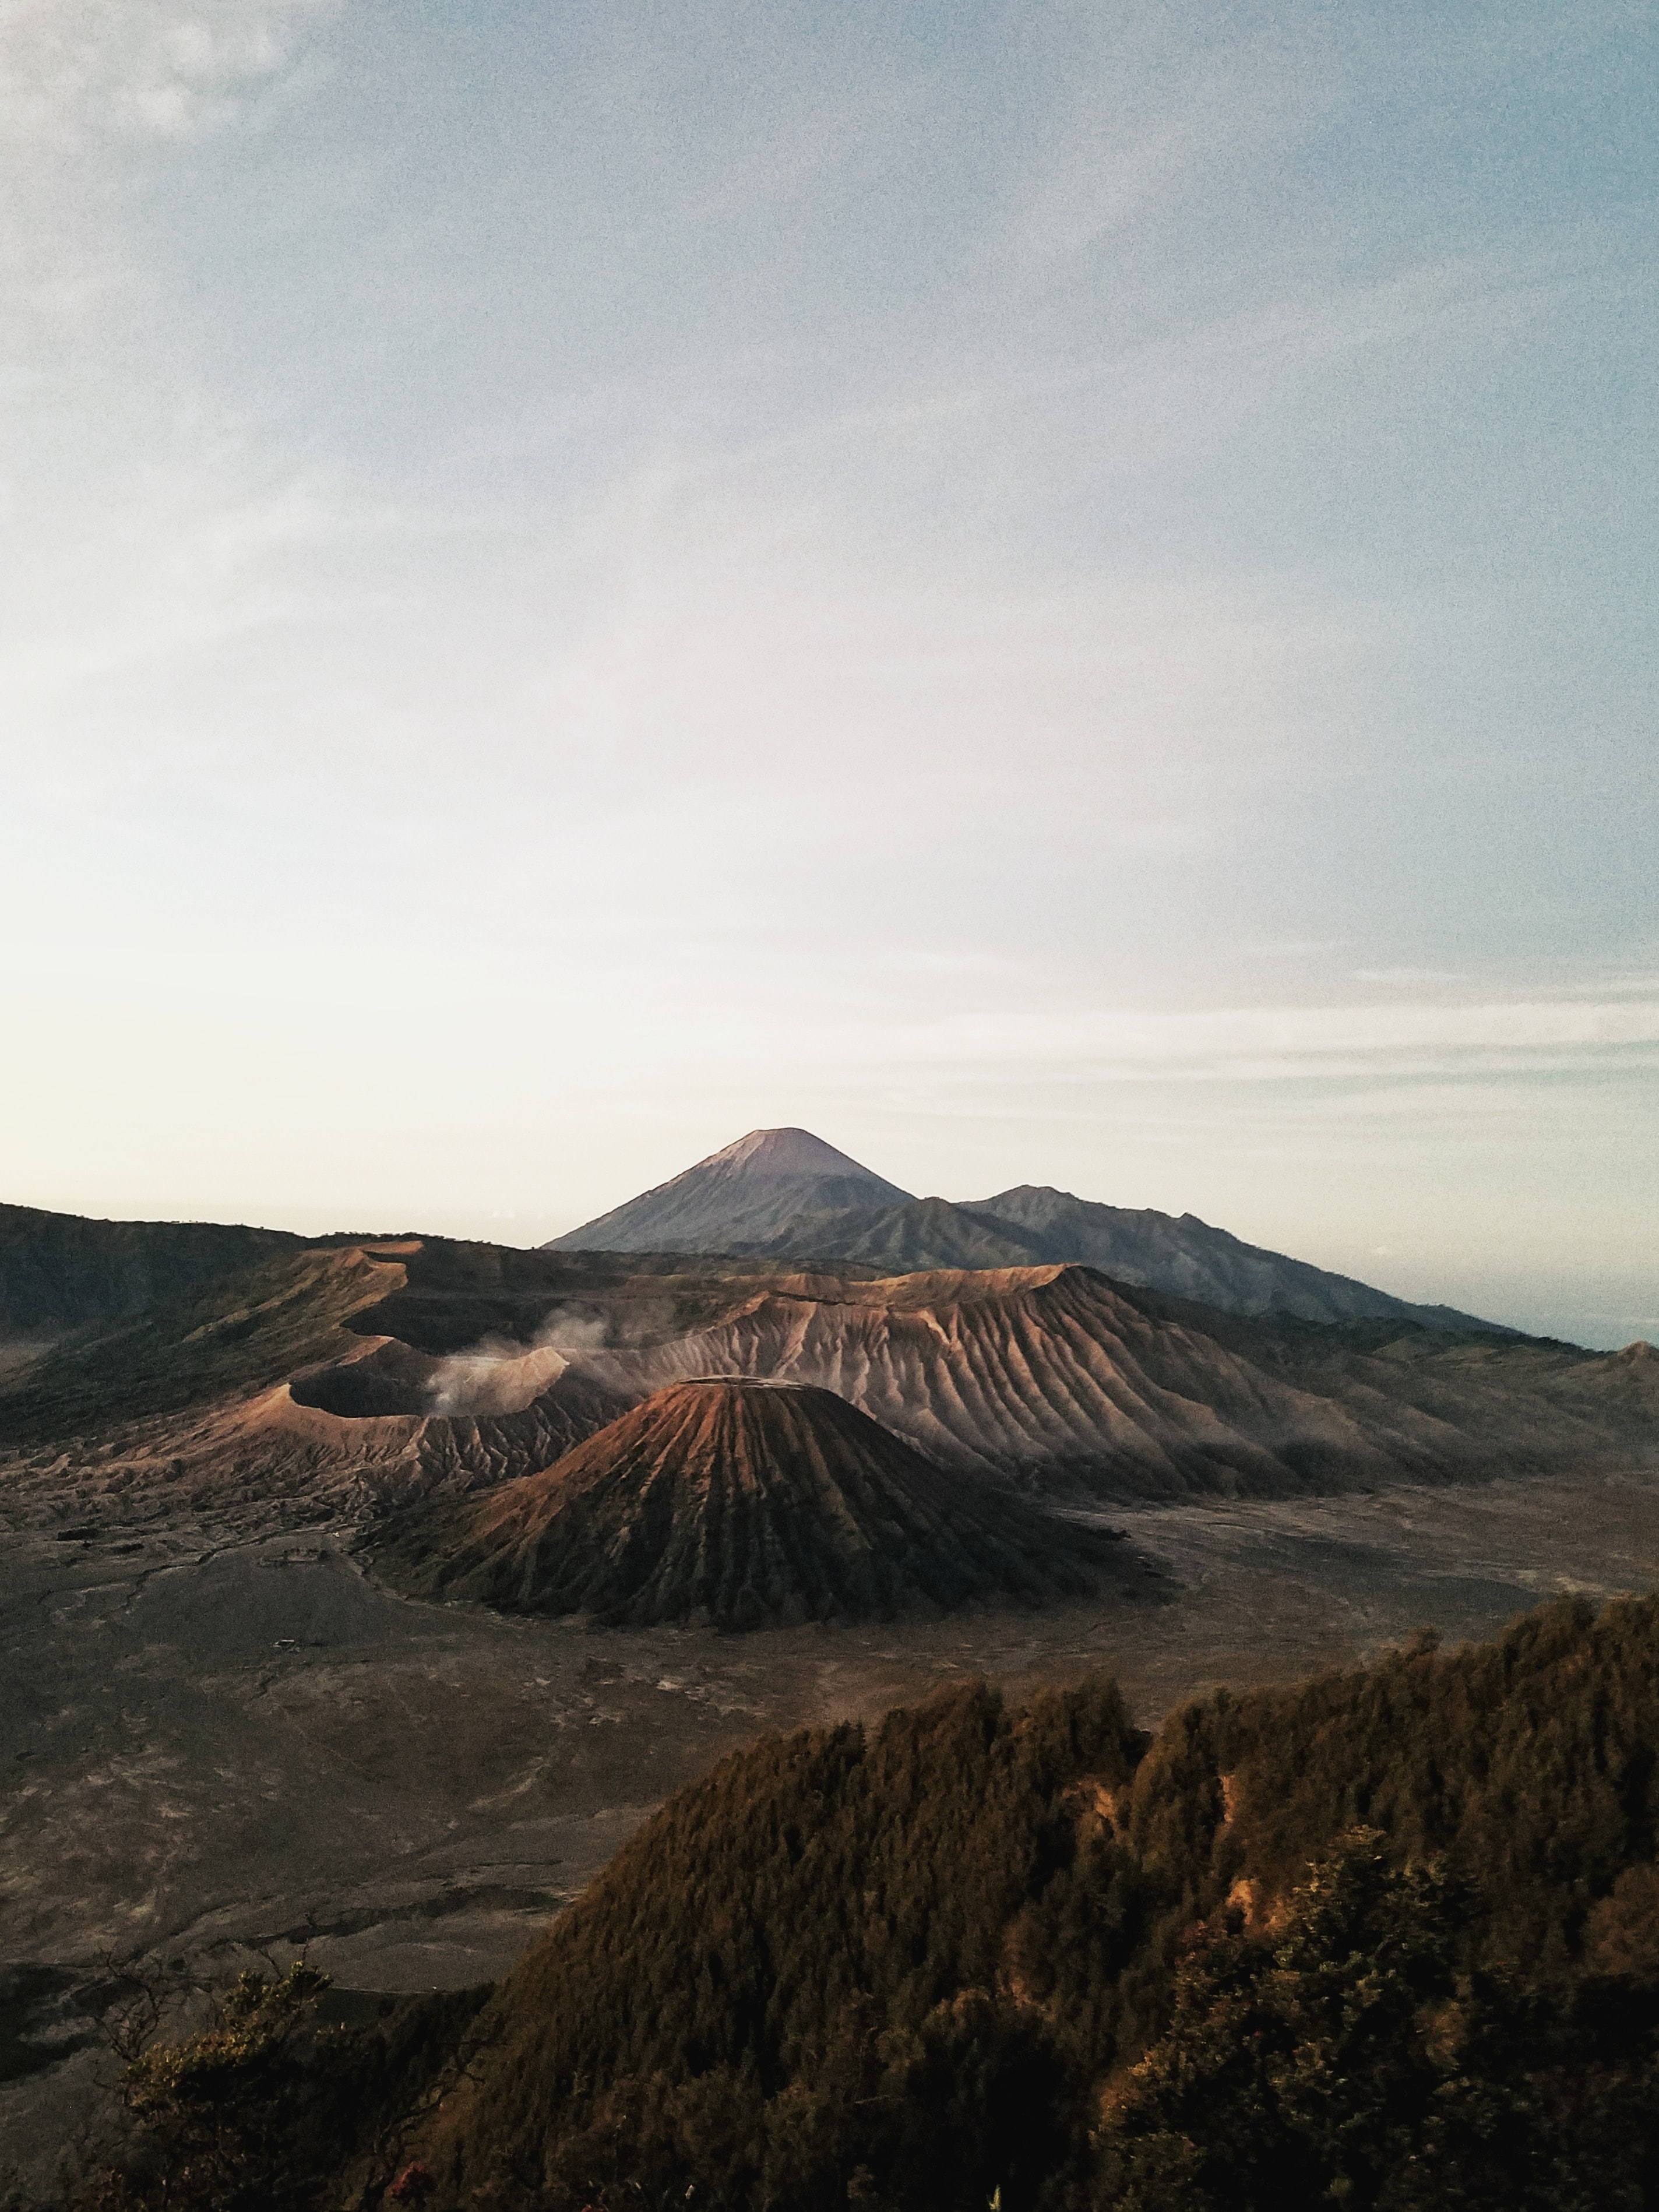 photo of crater and mountain